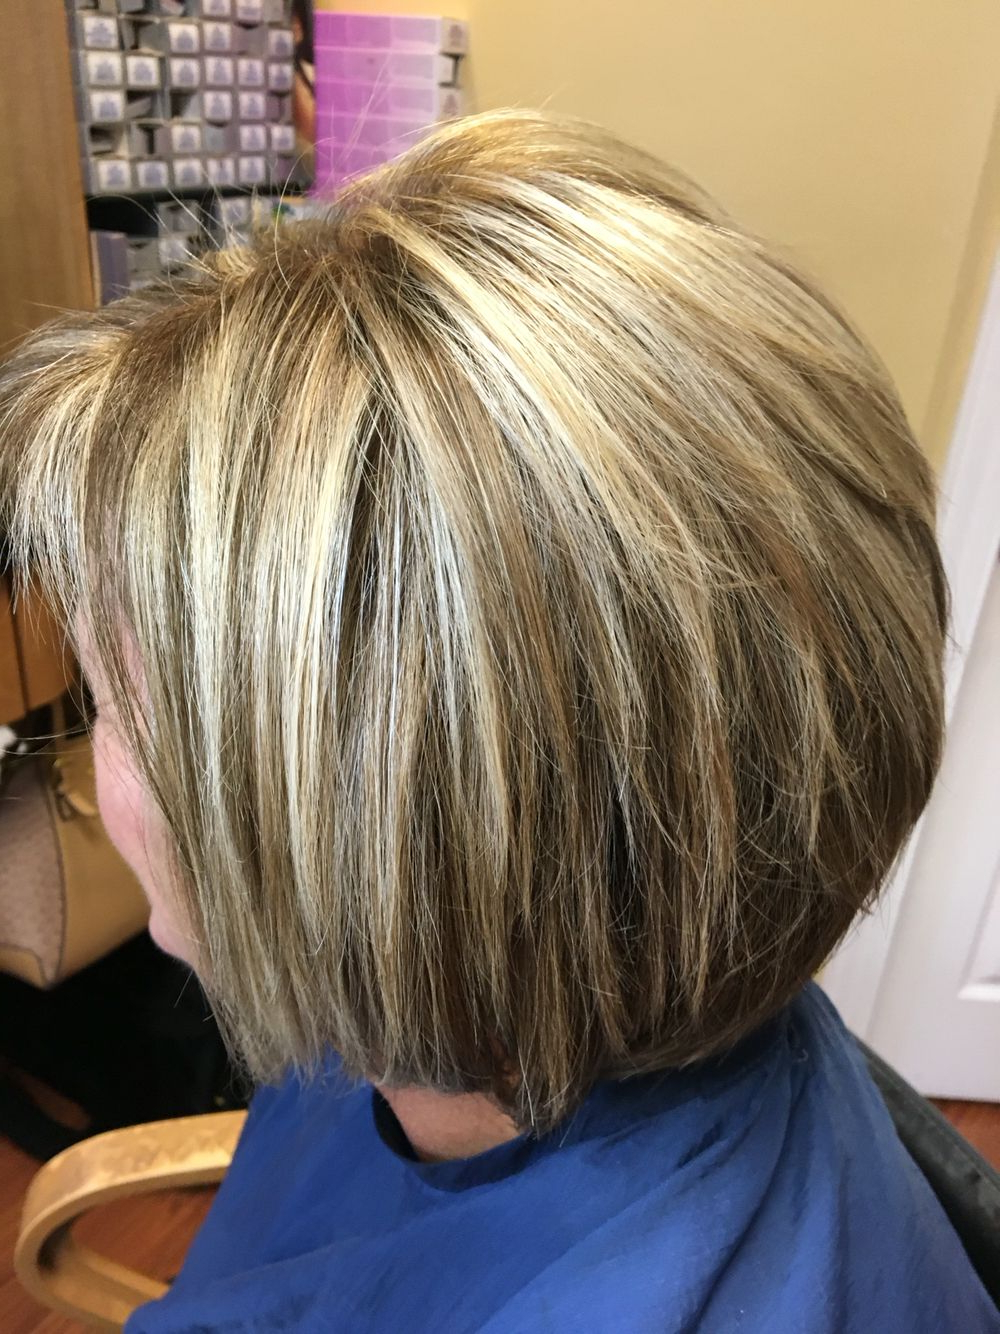 Blonde Highlights And Lowlights For This Short Hair Cut And Style In Short Ruffled Hairstyles With Blonde Highlights (View 13 of 20)